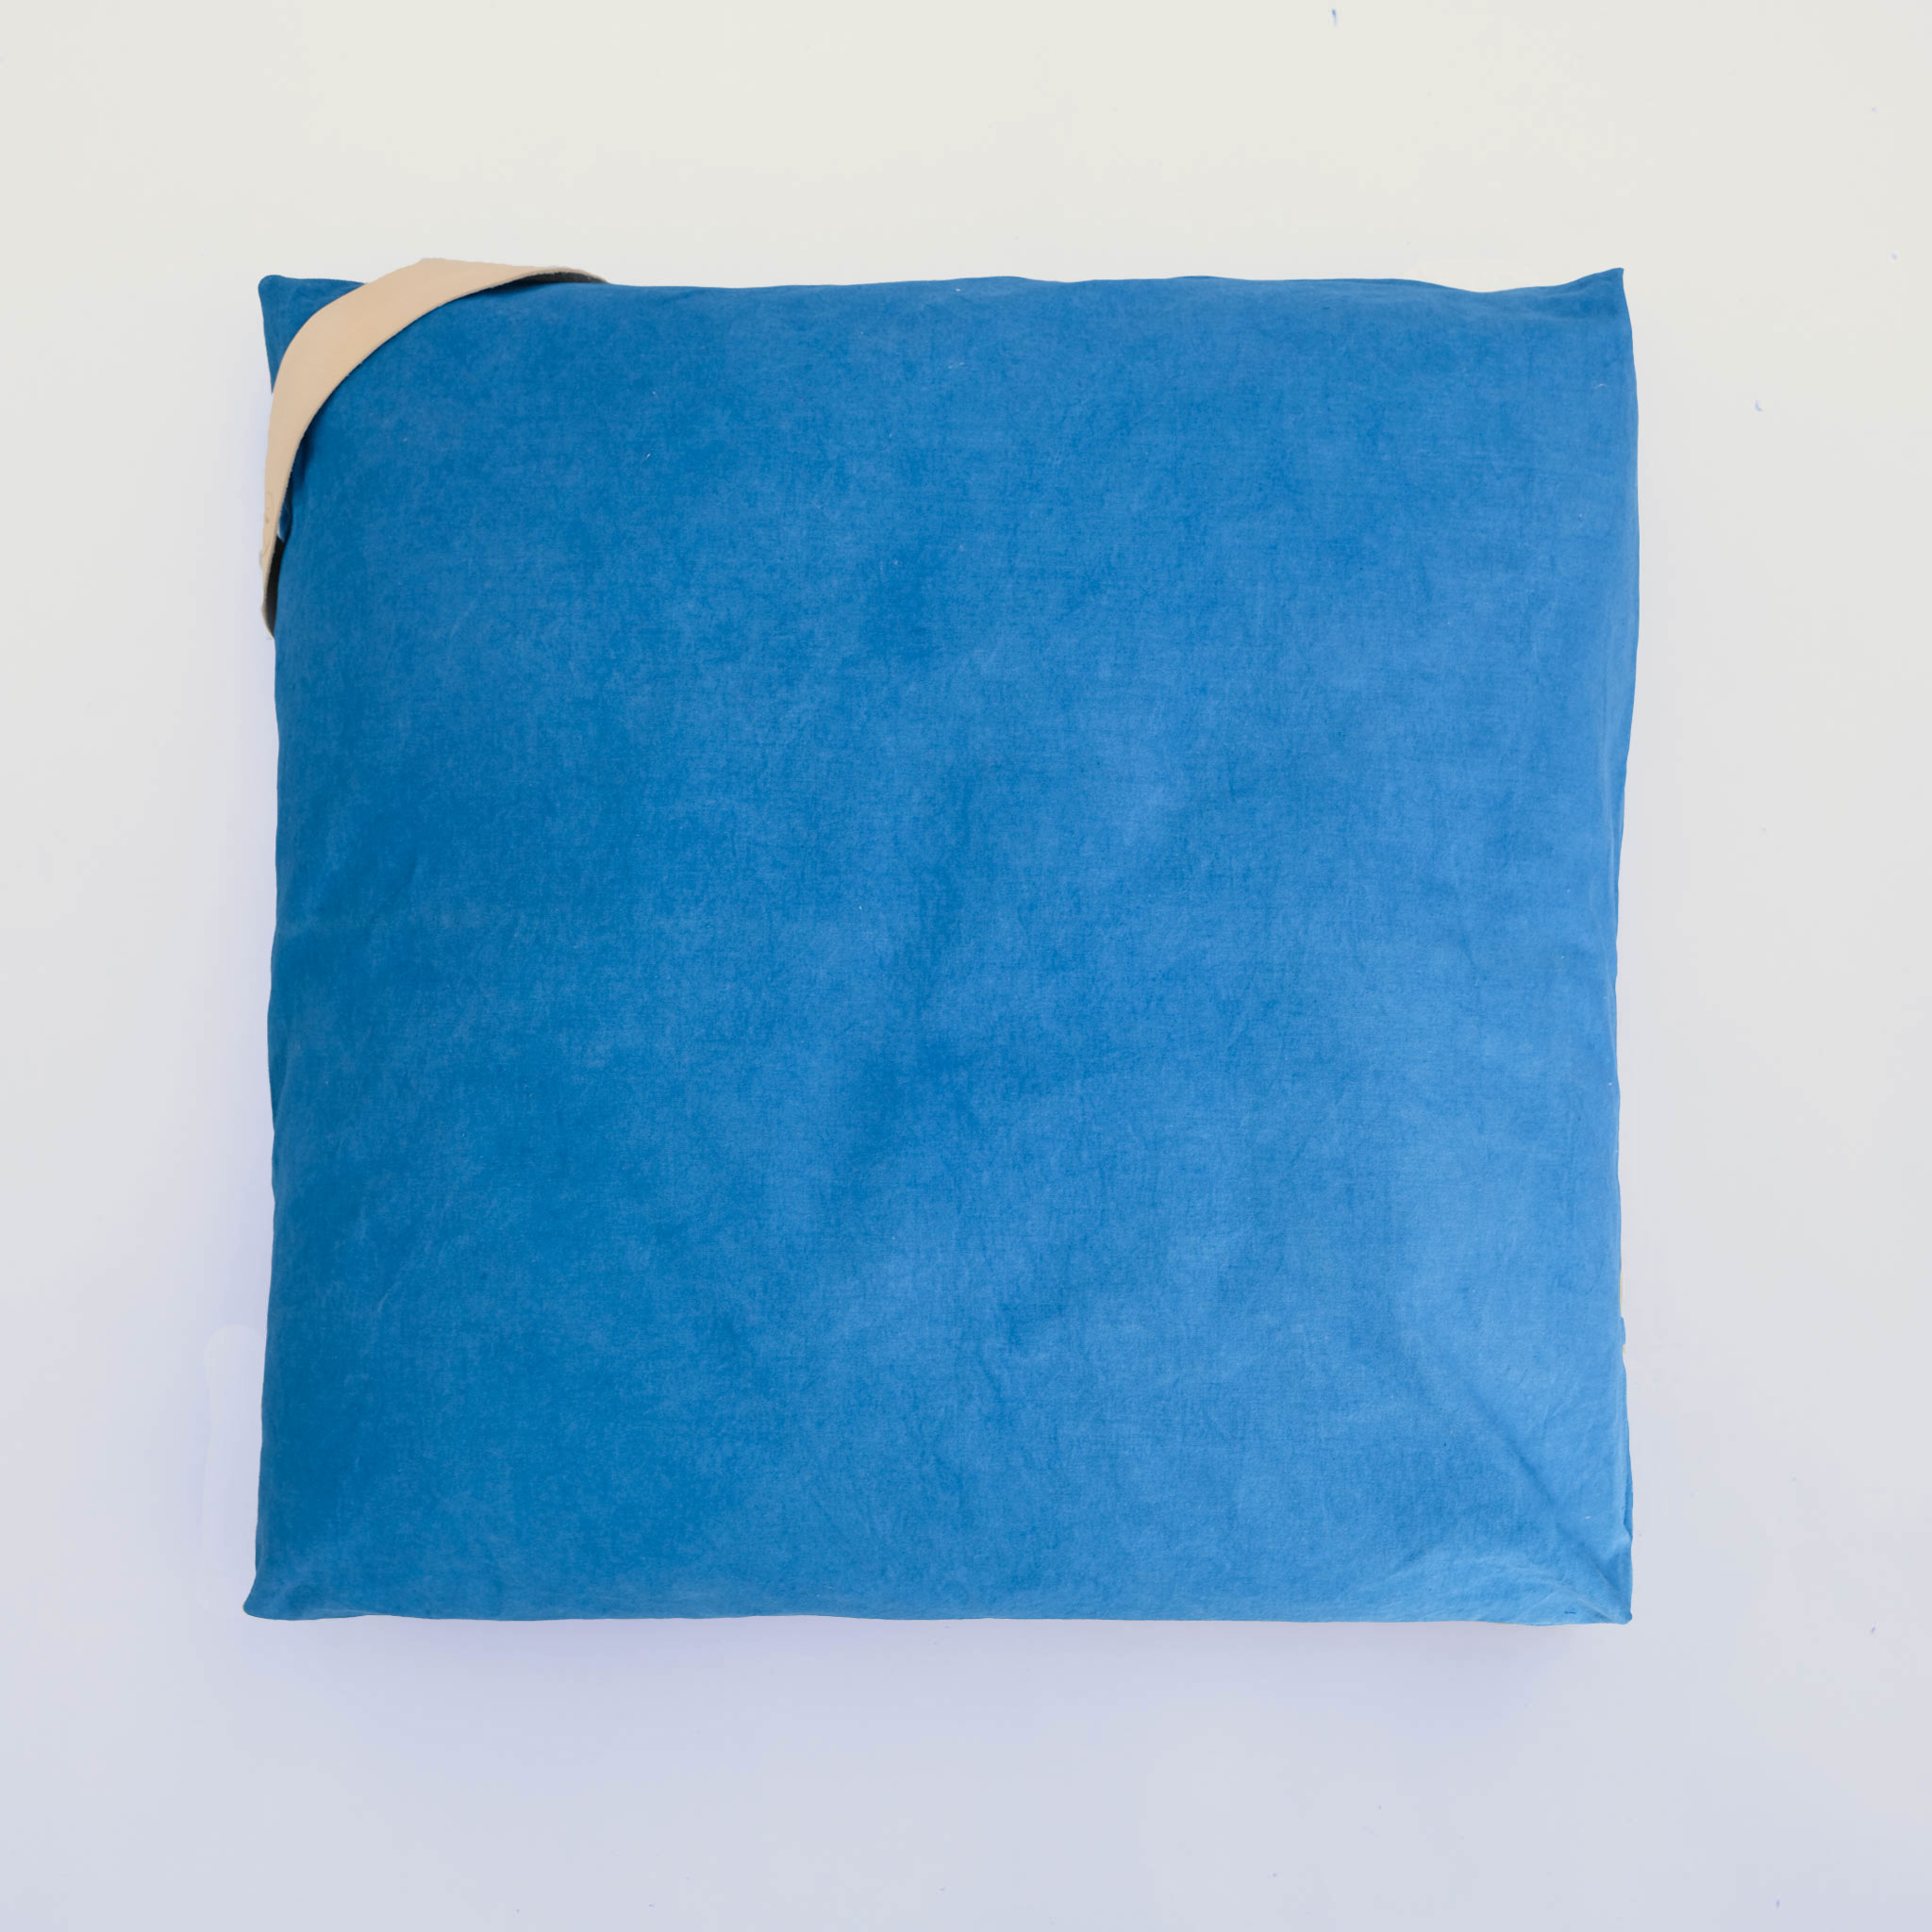 floor cushion naturally dyed sustainable organic cotton indigo front view